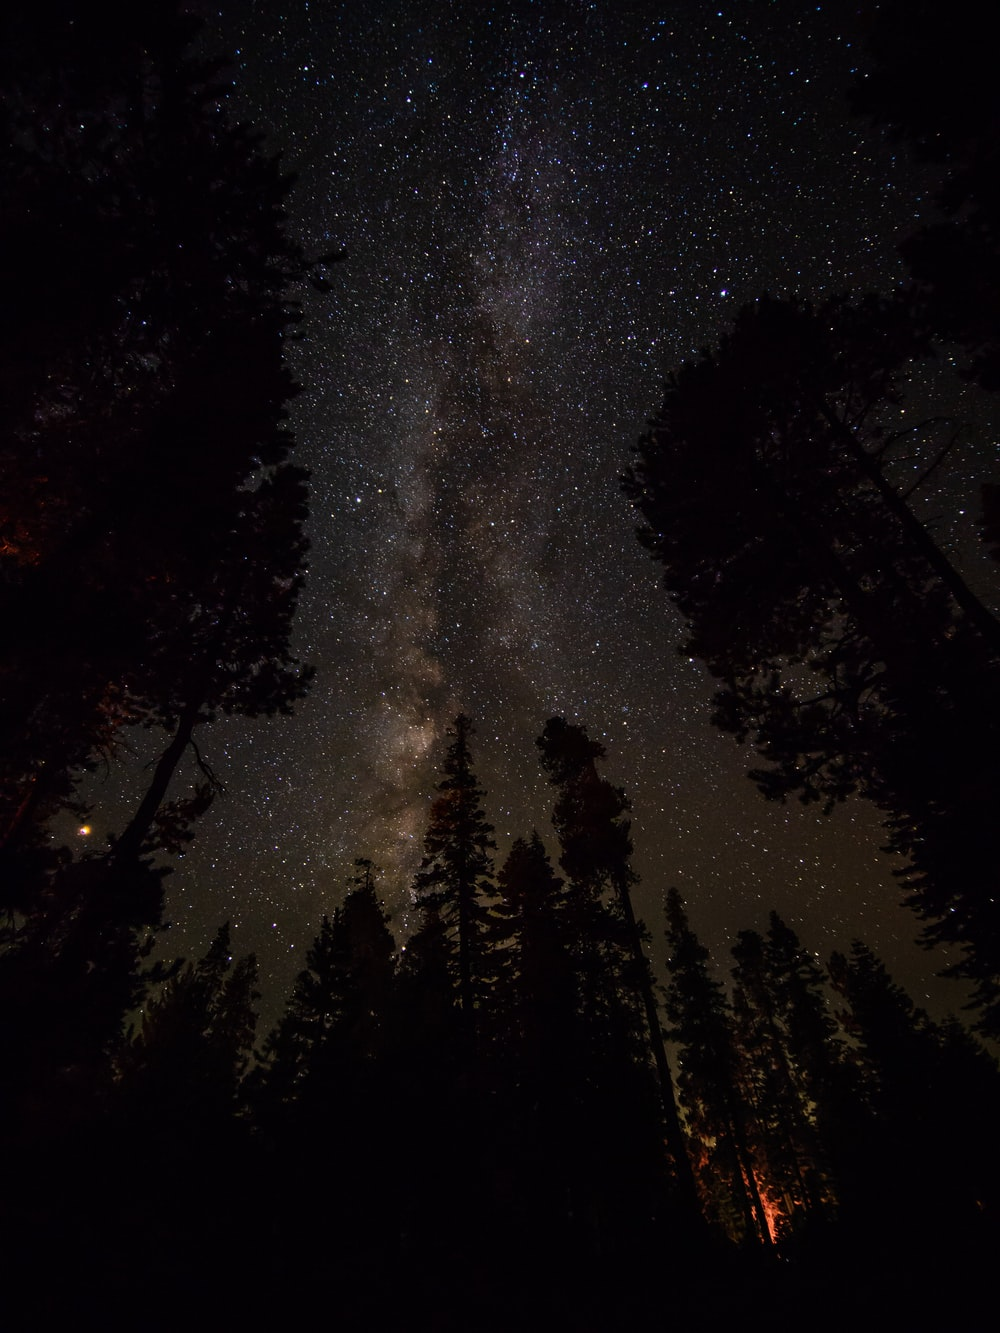 silhouette of pine trees under clear night sky